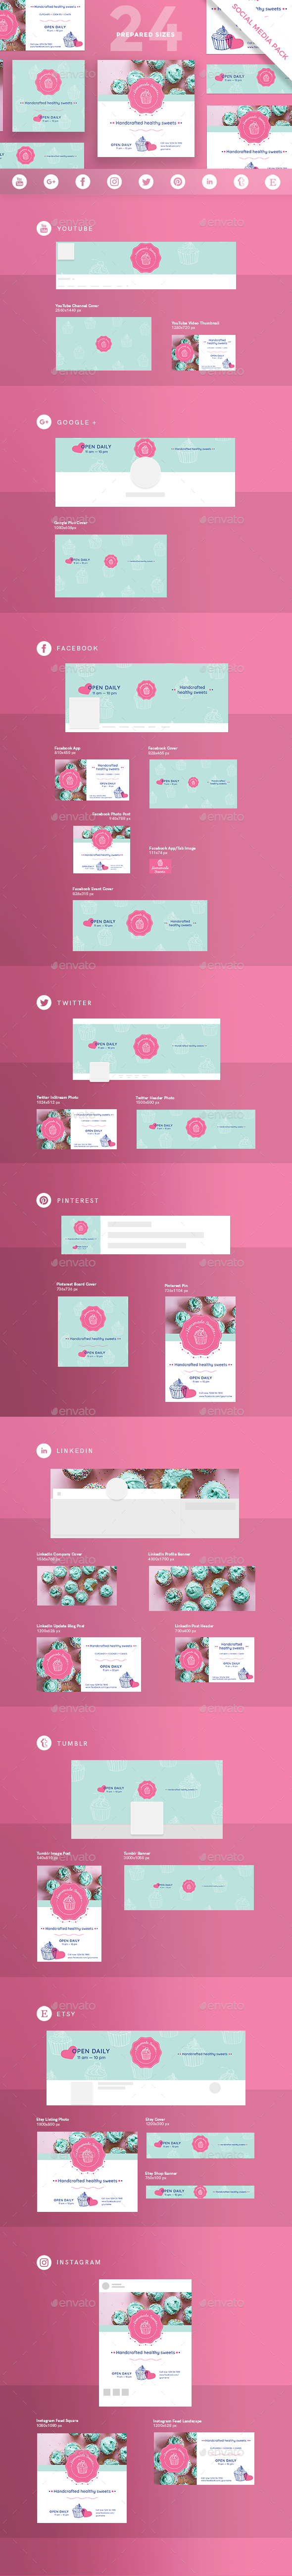 Homemade Sweets Social Media Pack - Miscellaneous Social Media